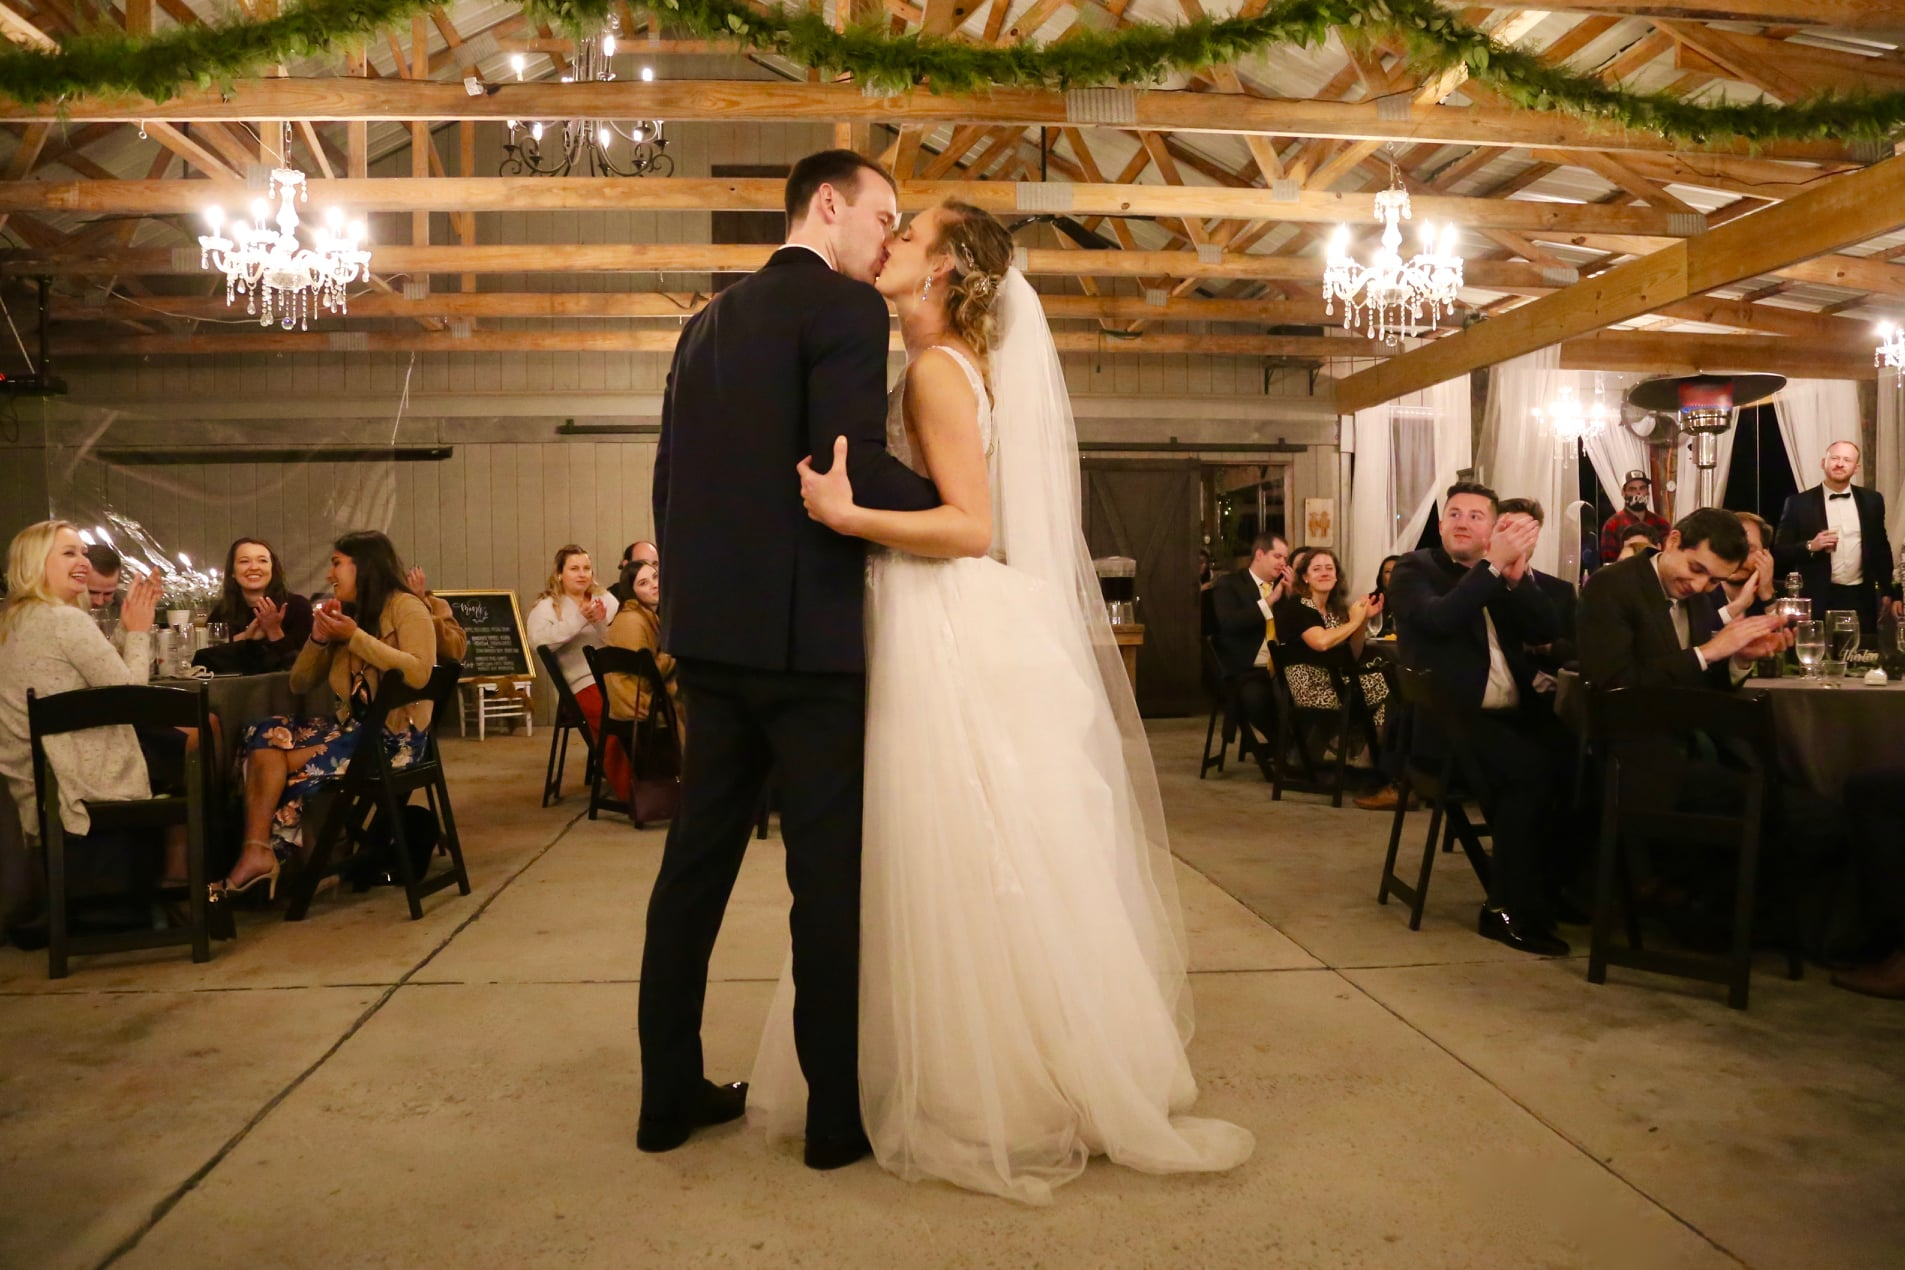 chandelier event venue in raleigh for the perfect wedding day kiss between bride and groom